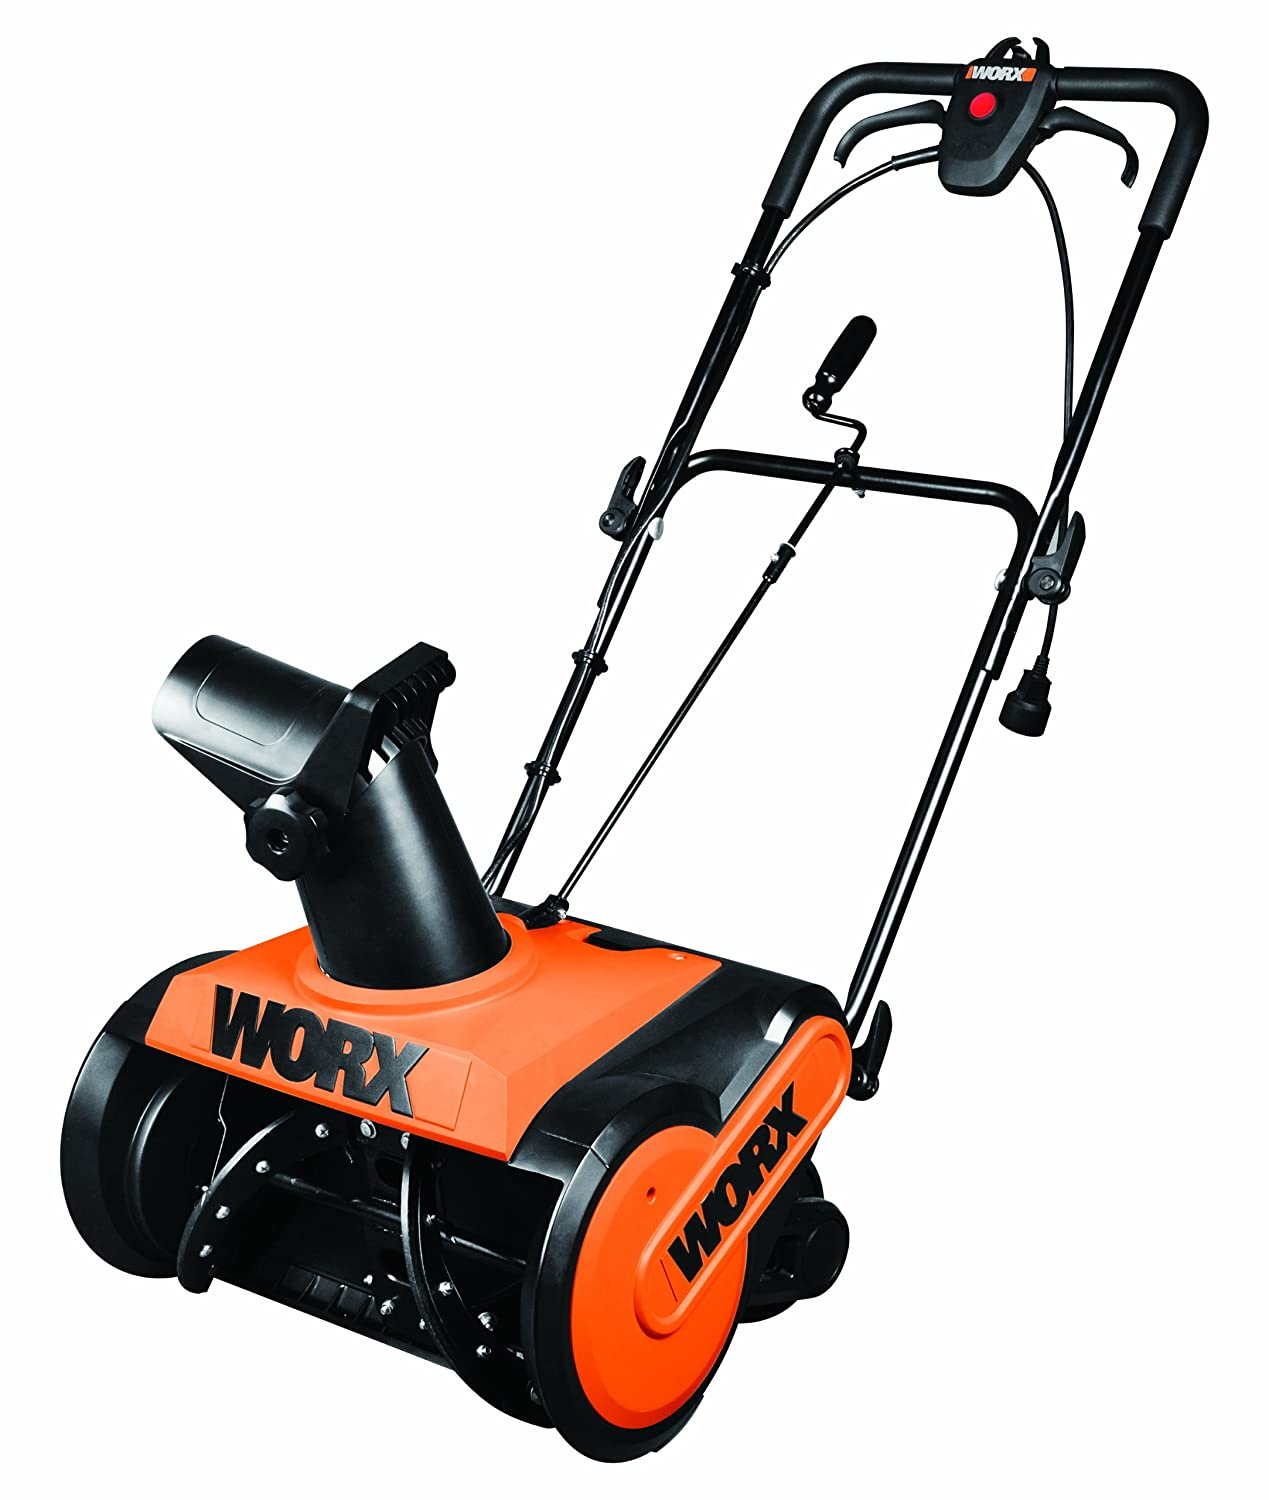 81oNfwe0jIL._SL1500_ amazon com worx wg650 18 inch 13 amp electric snow thrower  at honlapkeszites.co